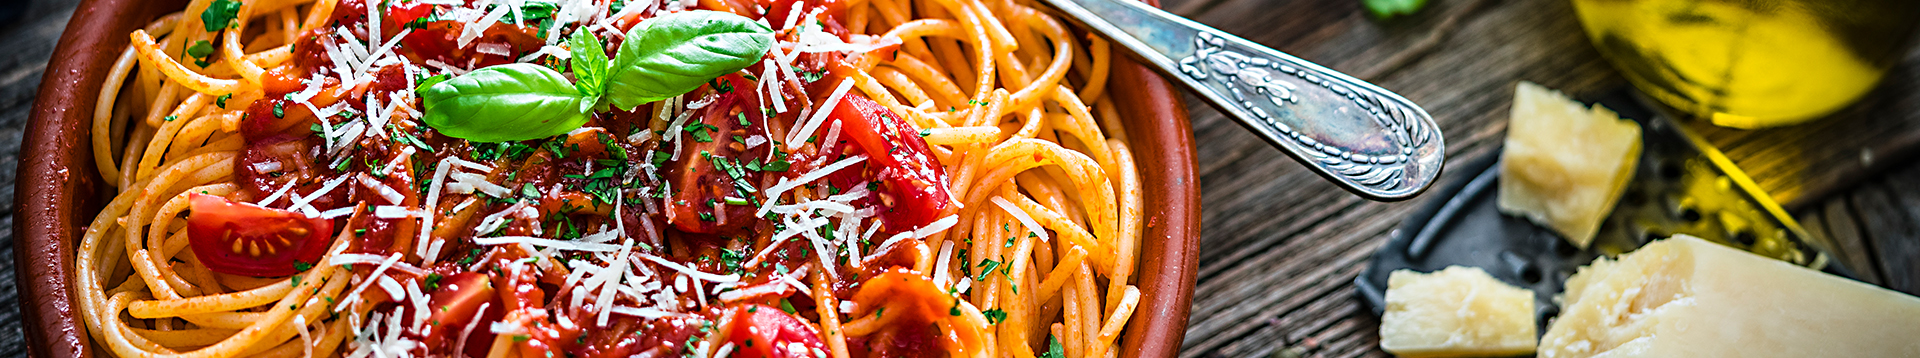 Bowl of Spaghetti with tomato sauce on rustic wooden table